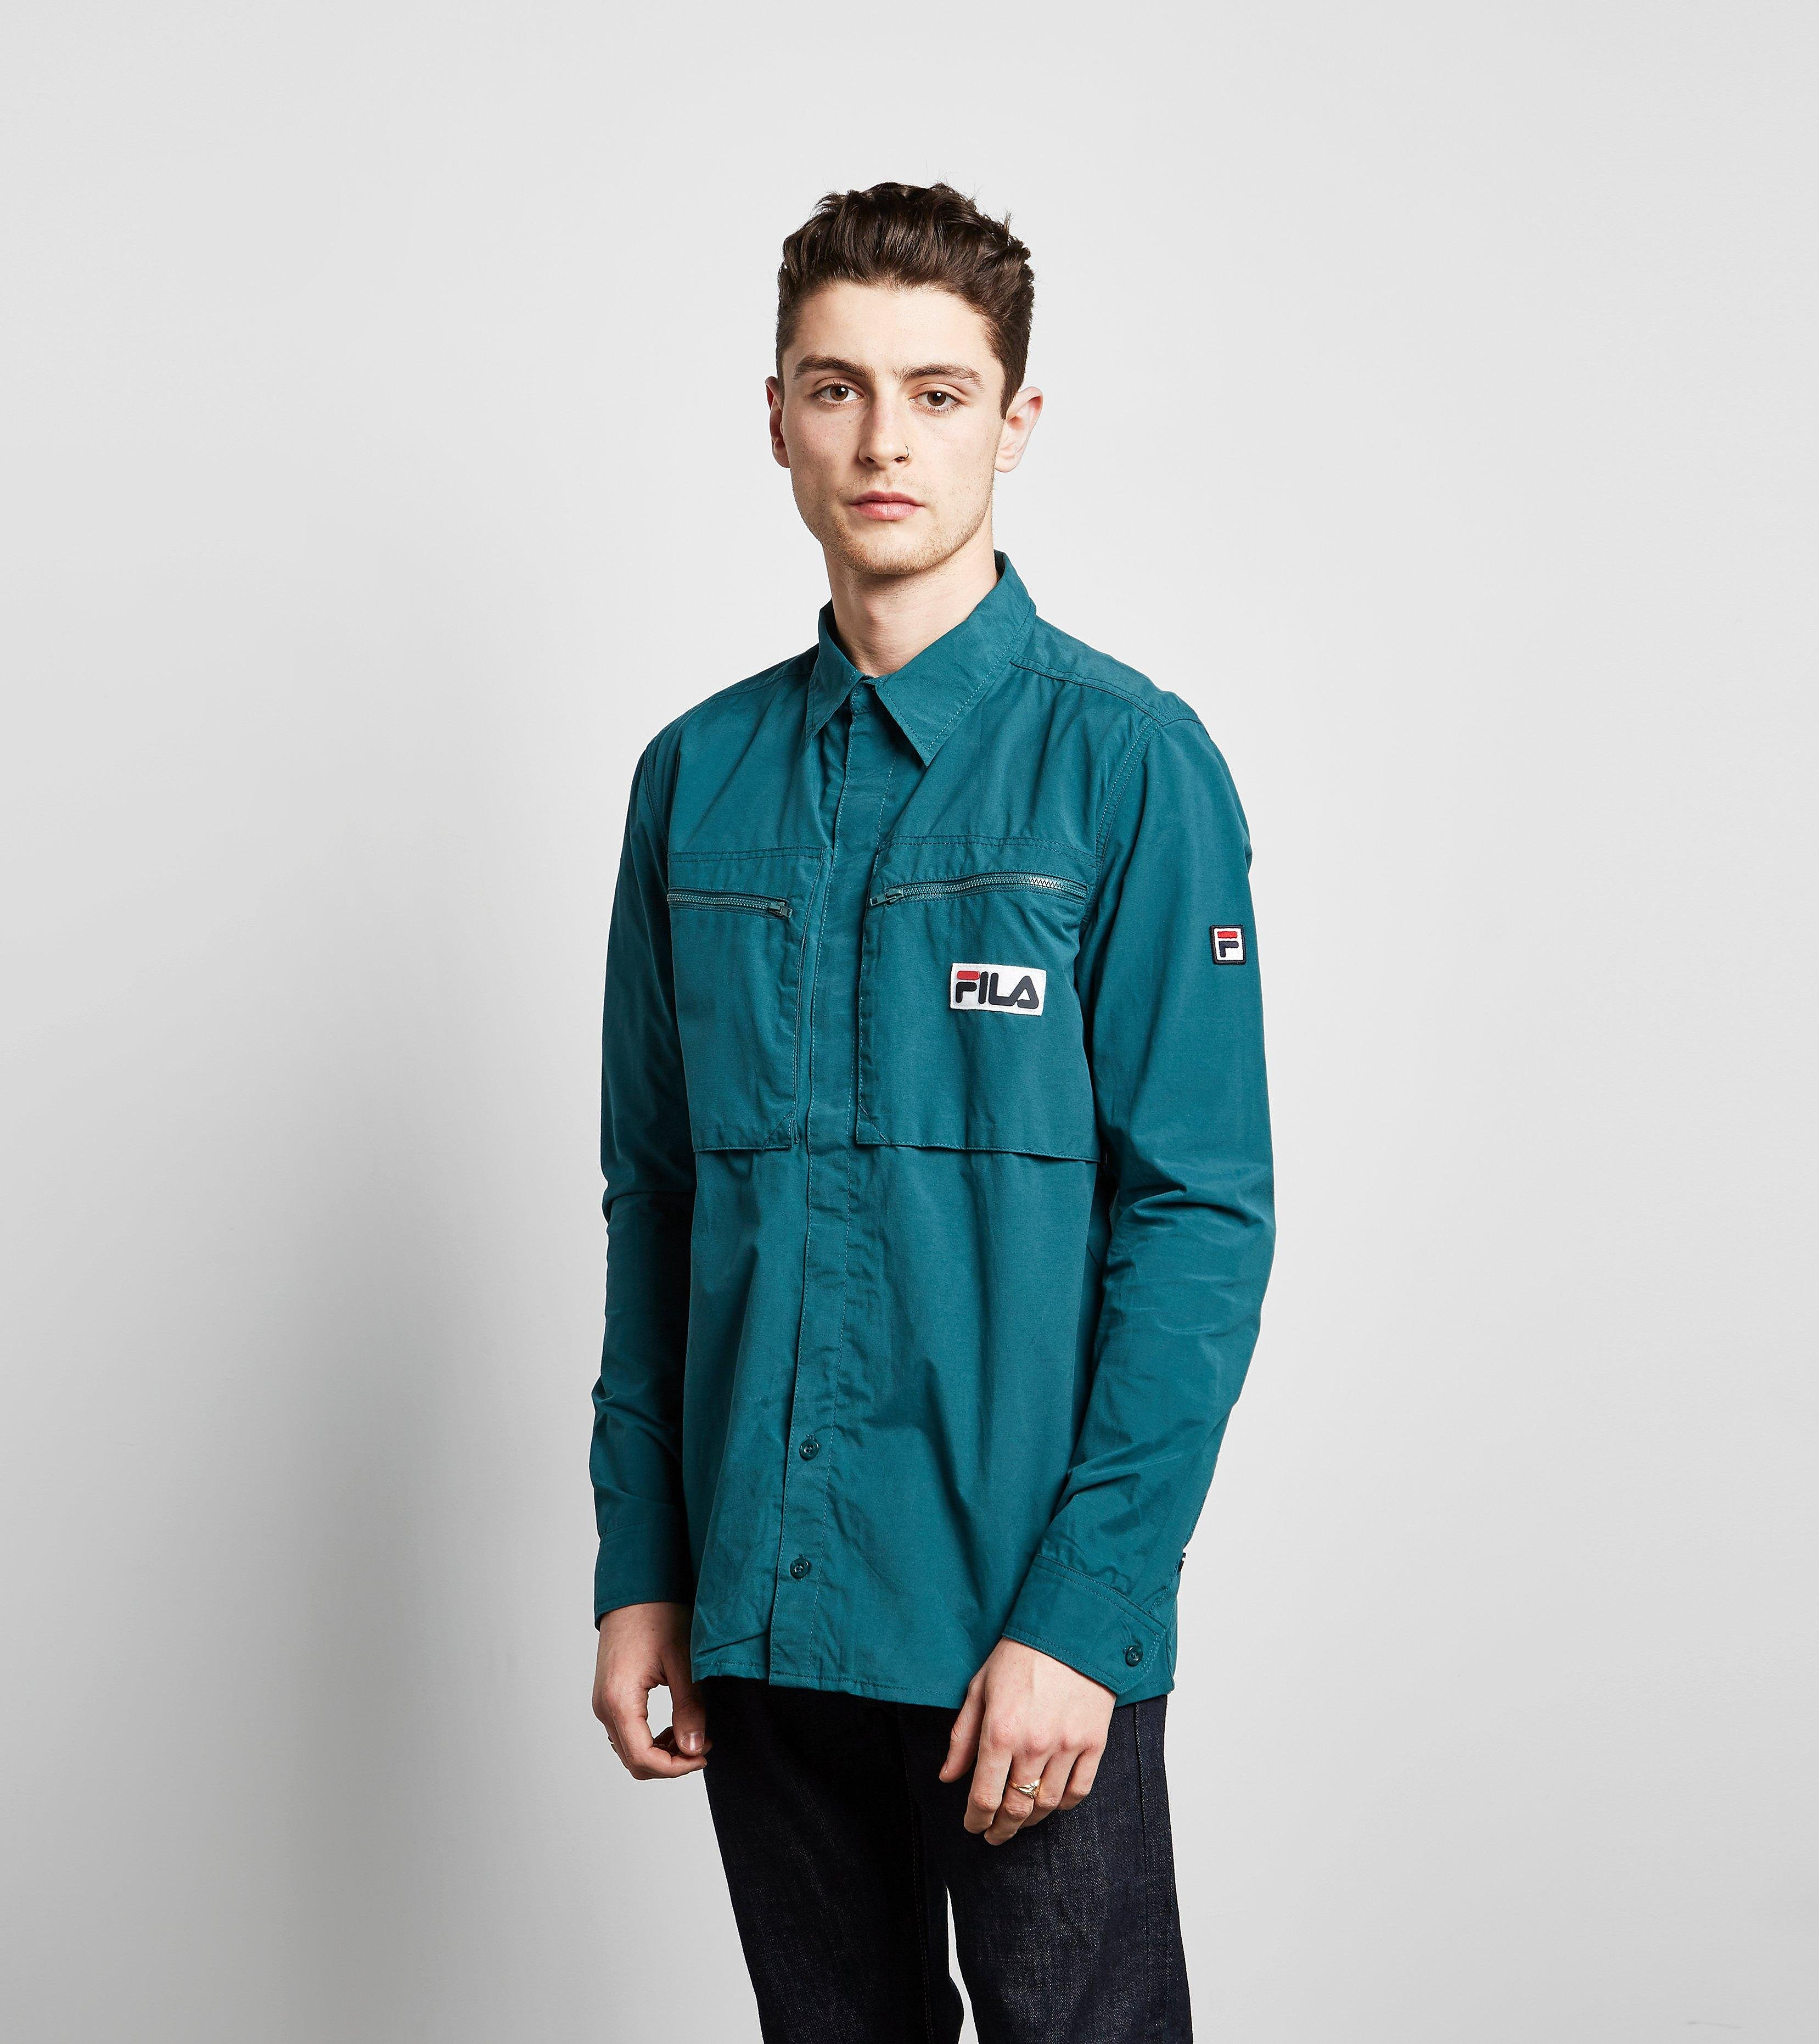 Fila Meribel Shirt